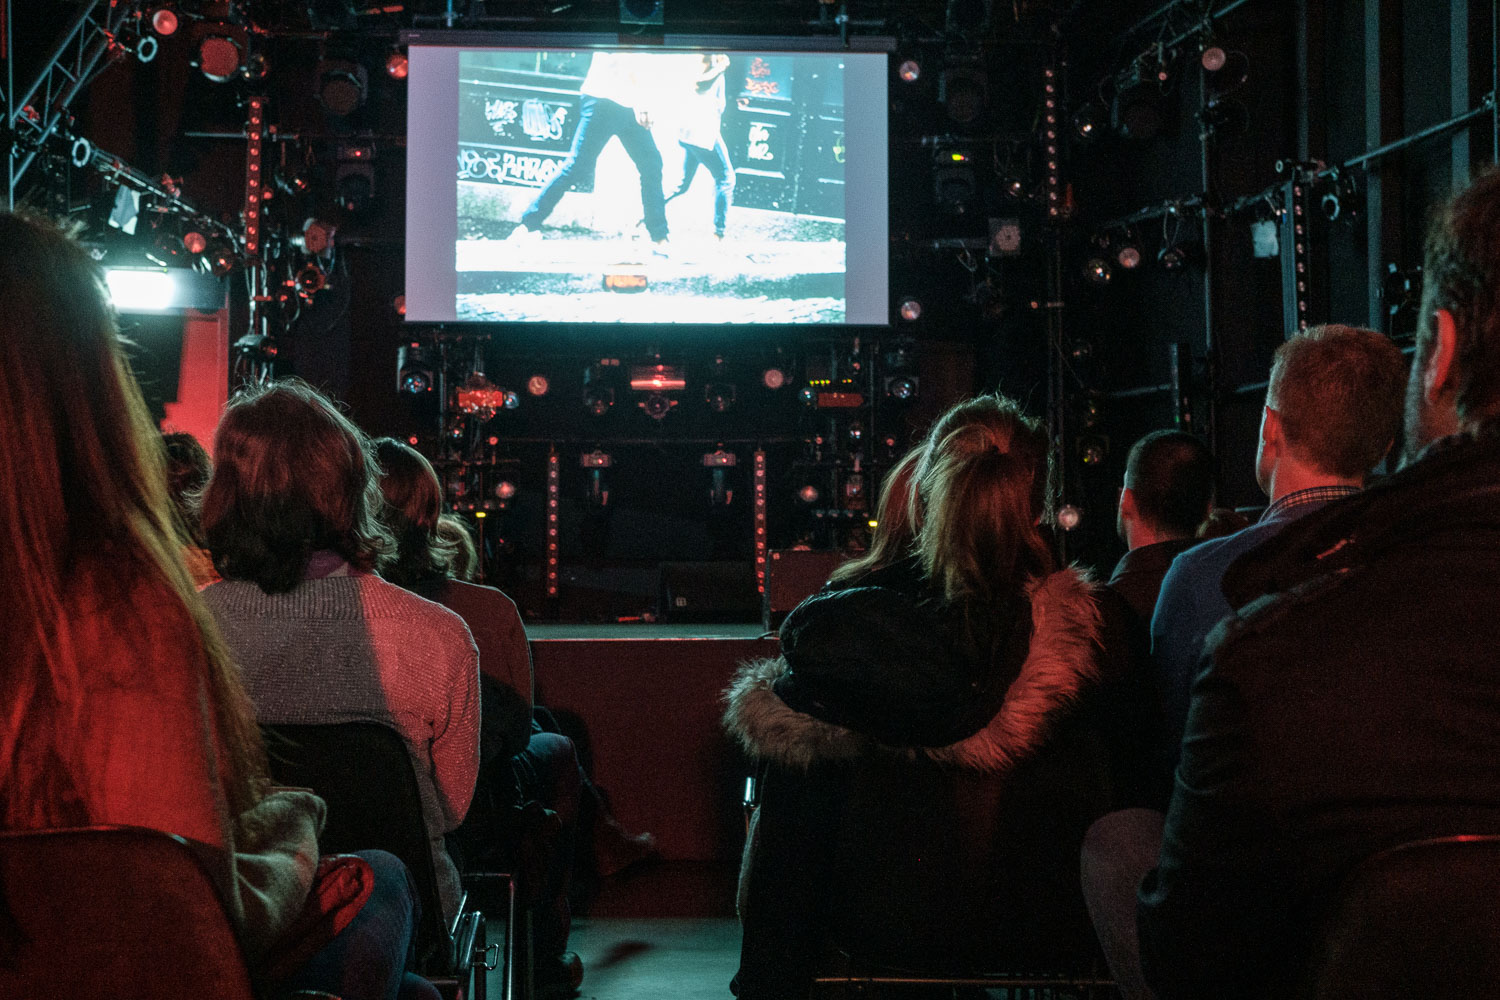 Luxembourg Street Photography Festival 2019 at Rotondes - LSPF 2019 - Slidenight